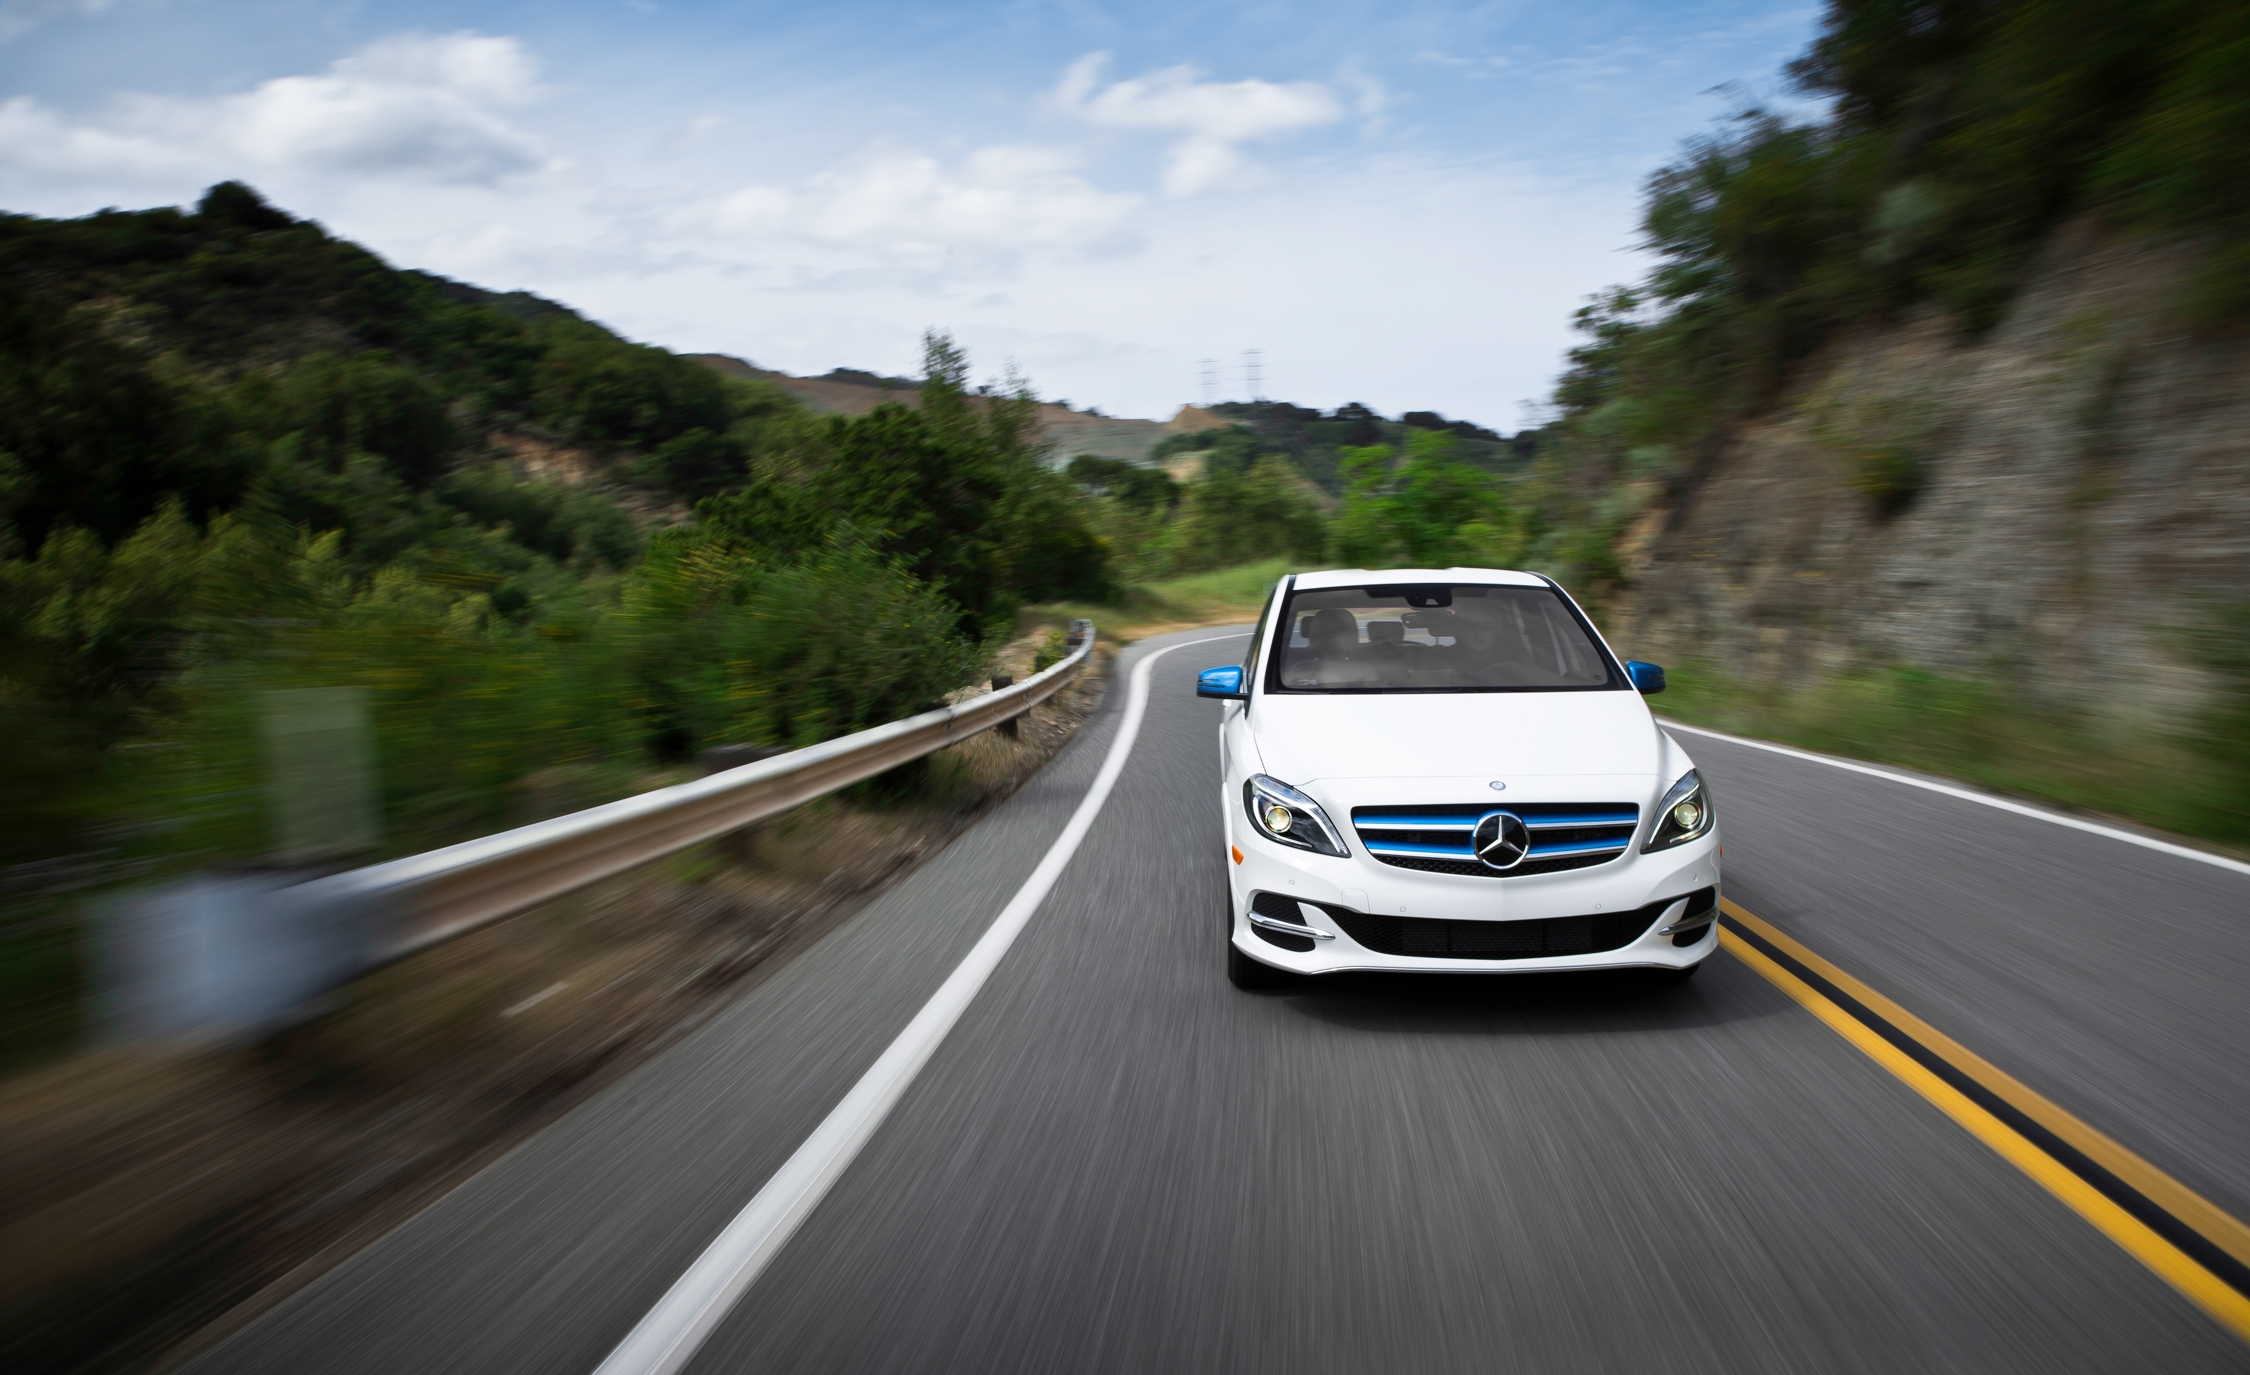 2014 B Class Electric Drive (View 4 of 27)